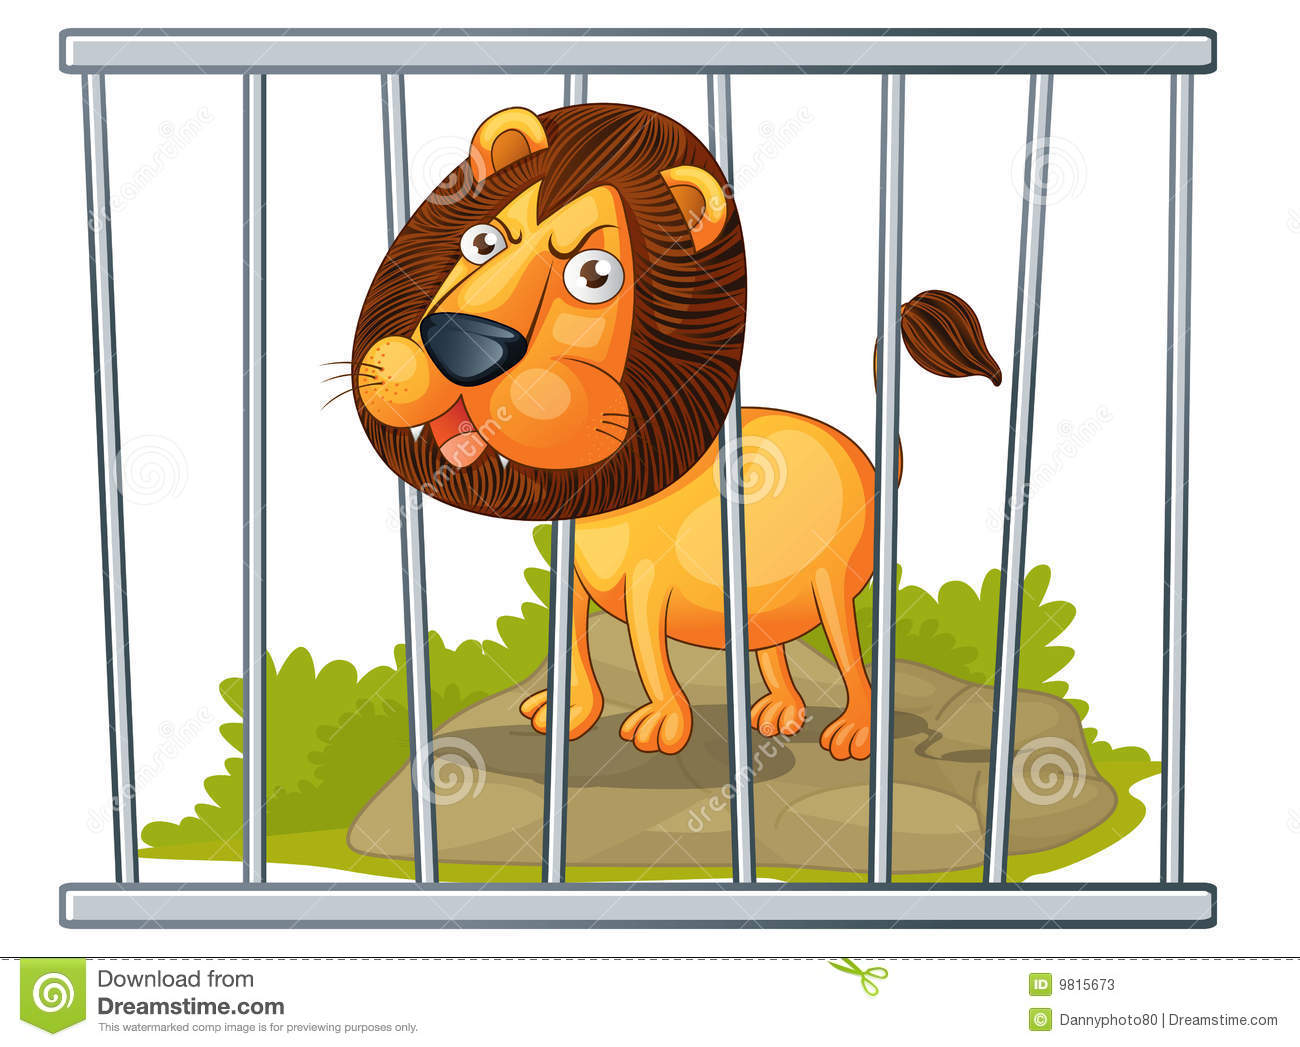 Lion In A Cage Stock Vector. Illustration Of Cartoon